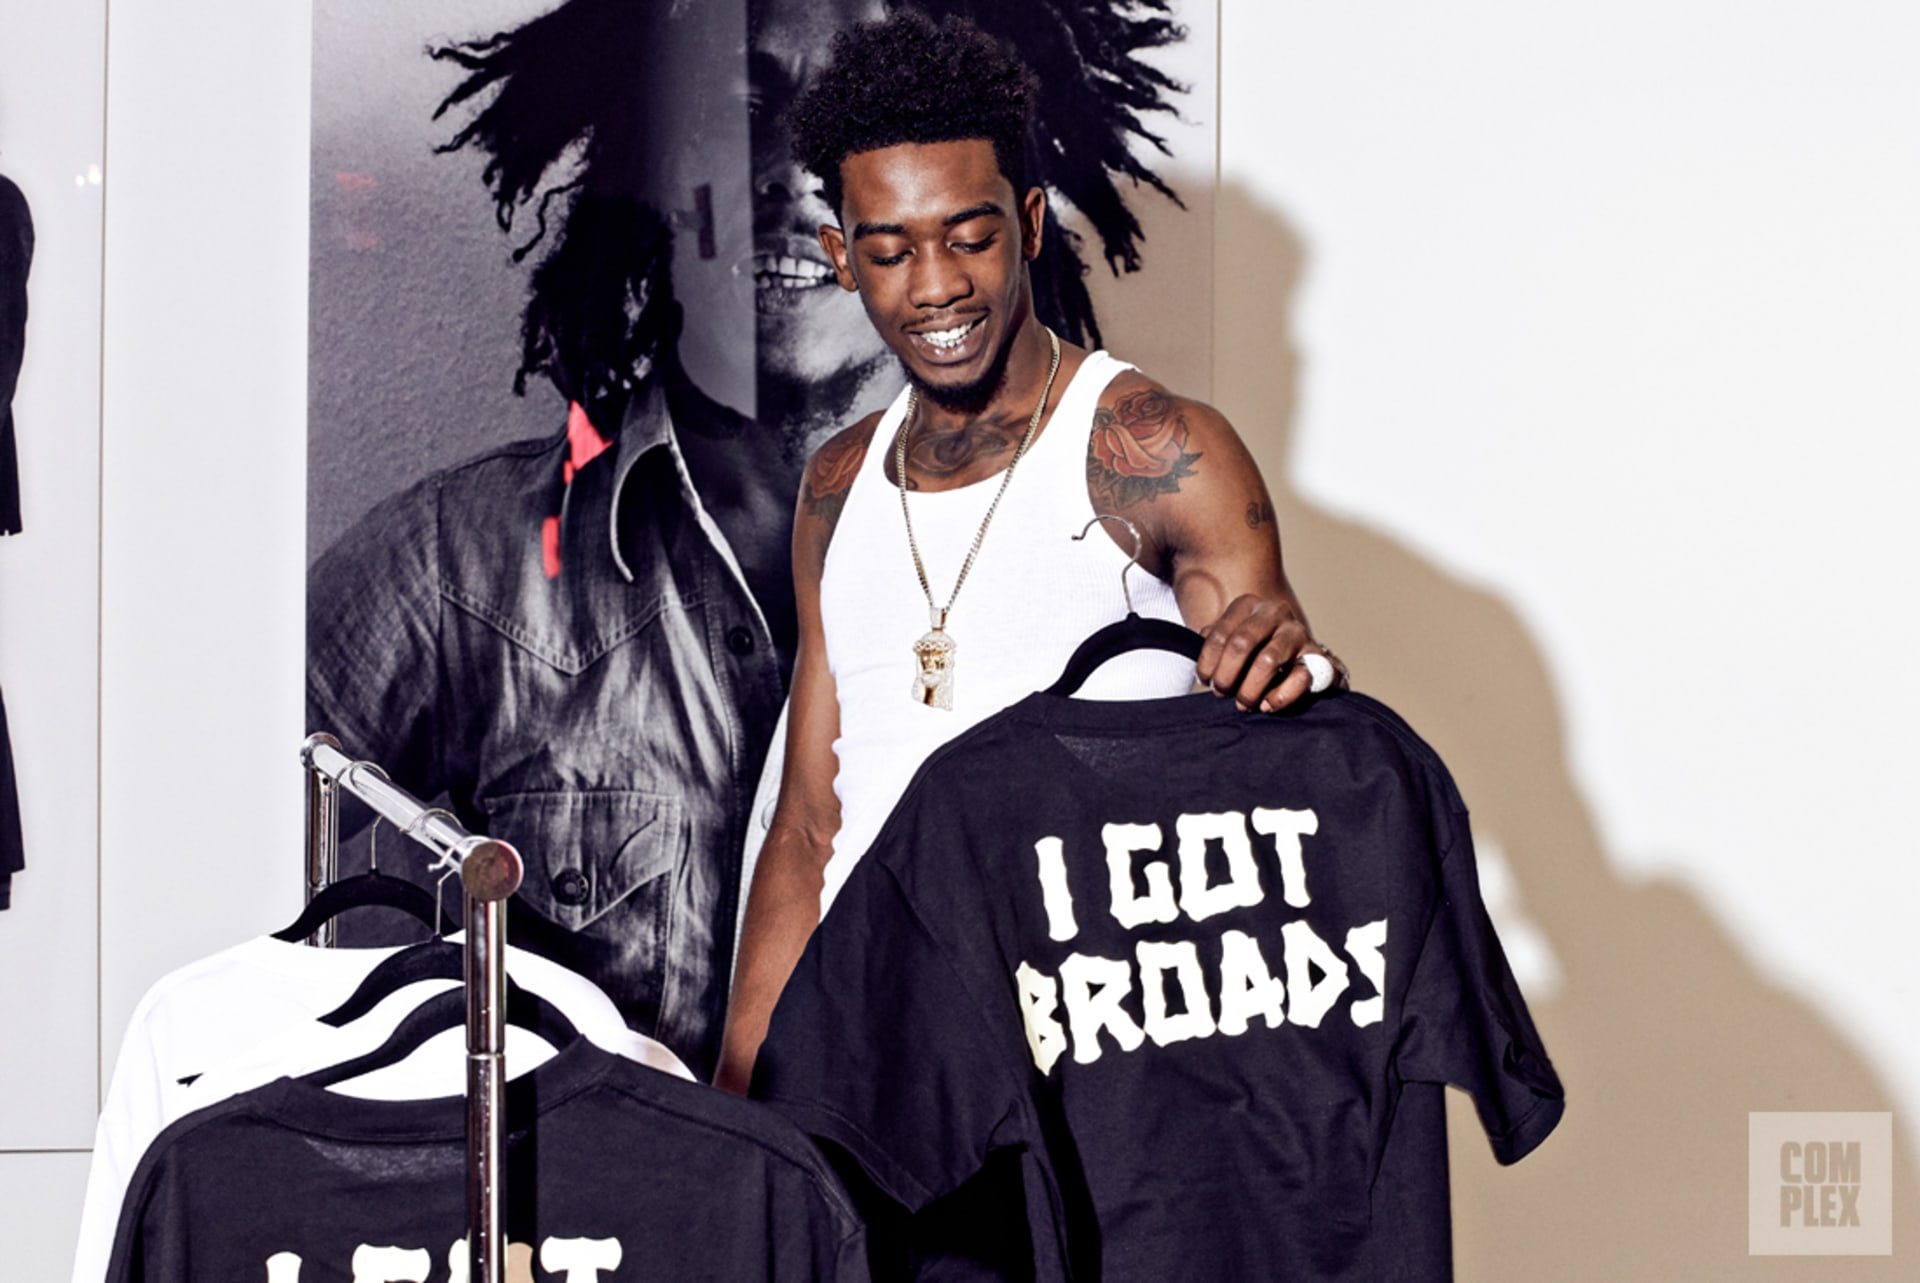 Desiigner previews merch created by Bravado.